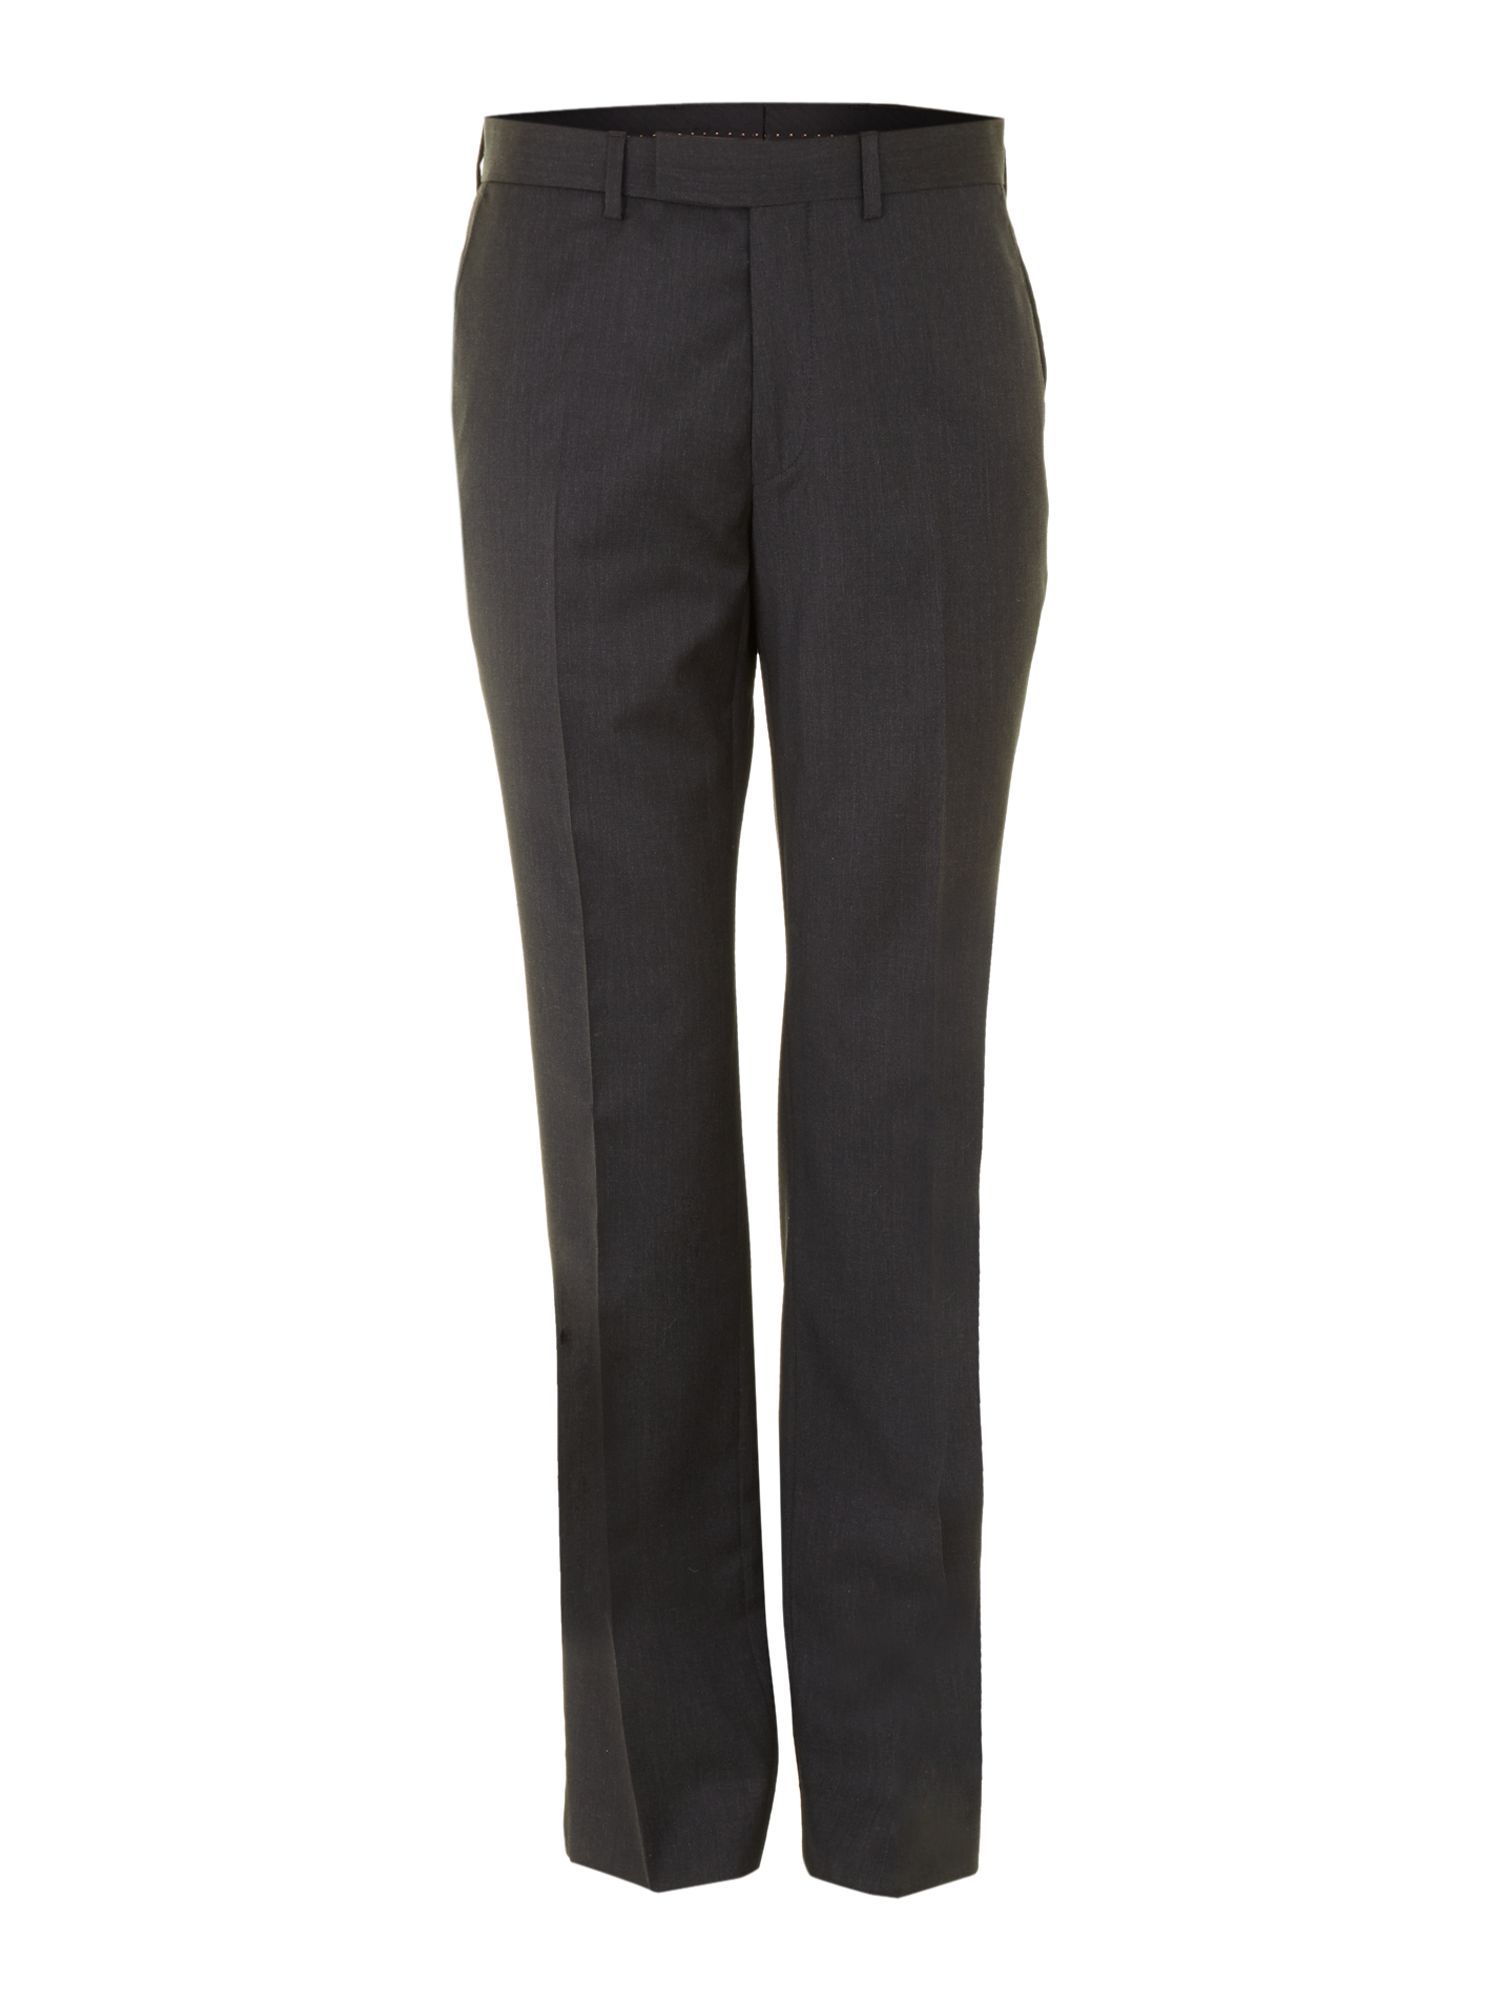 Men's Simon Carter Explorer regular fit suit trousers, Charcoal